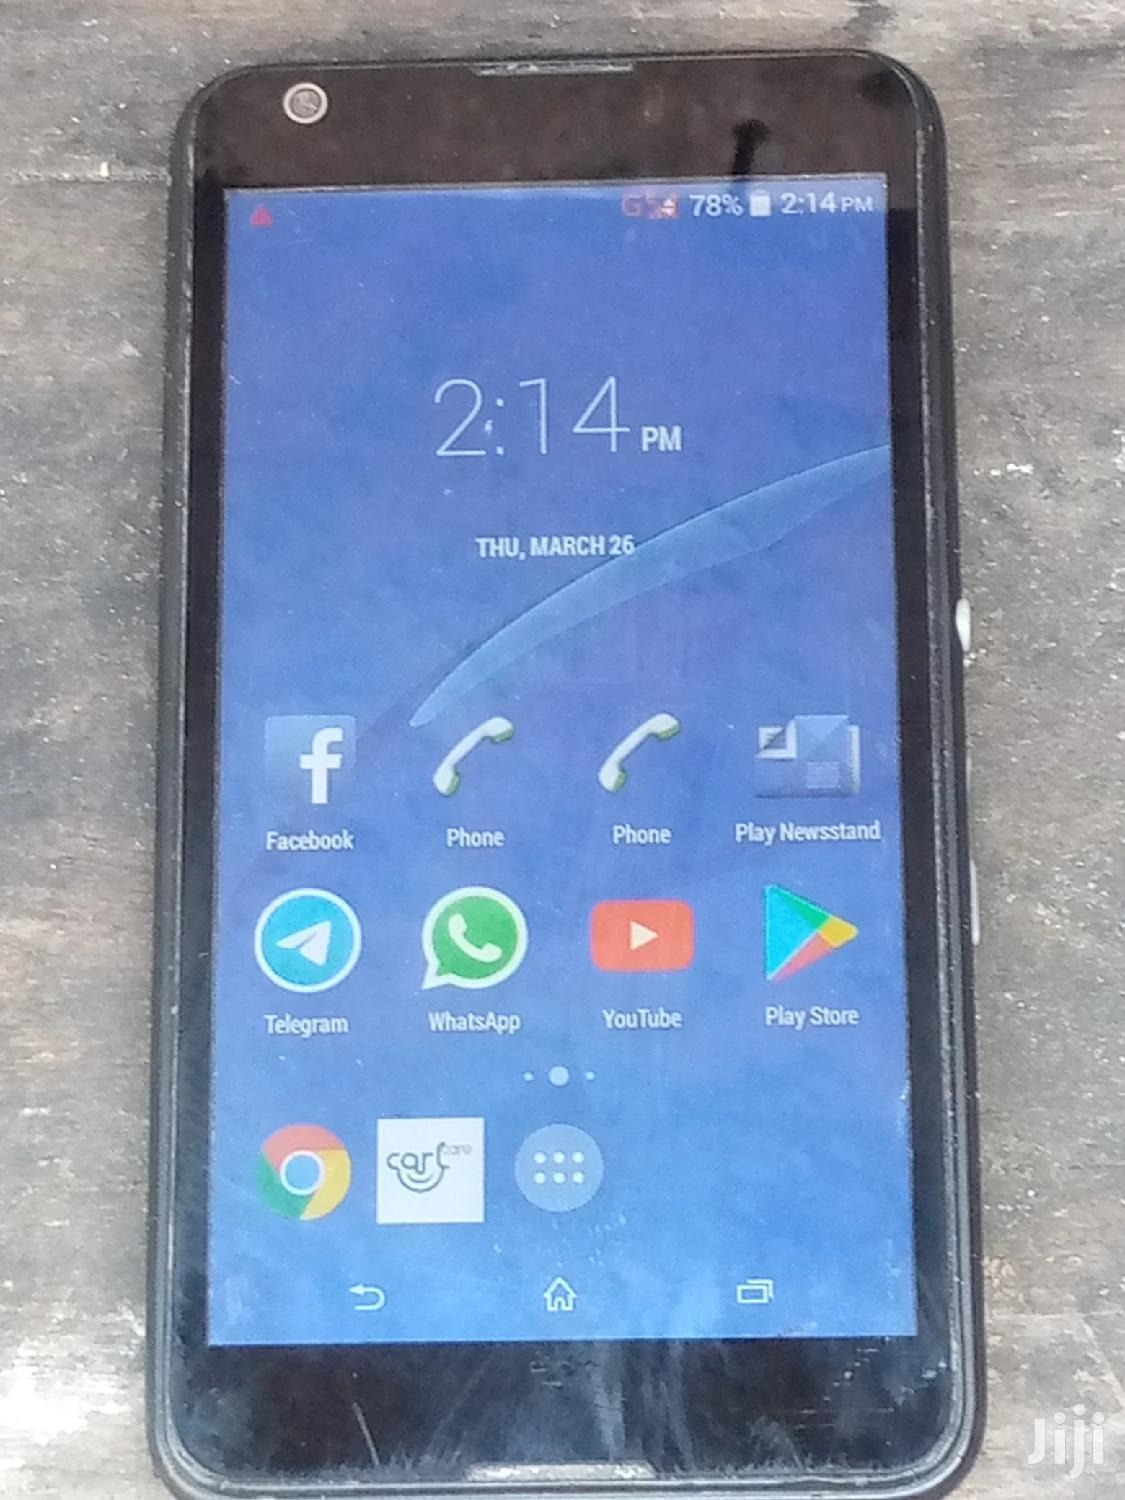 Sony Xperia E4 8 GB Black | Mobile Phones for sale in Accra Metropolitan, Greater Accra, Ghana